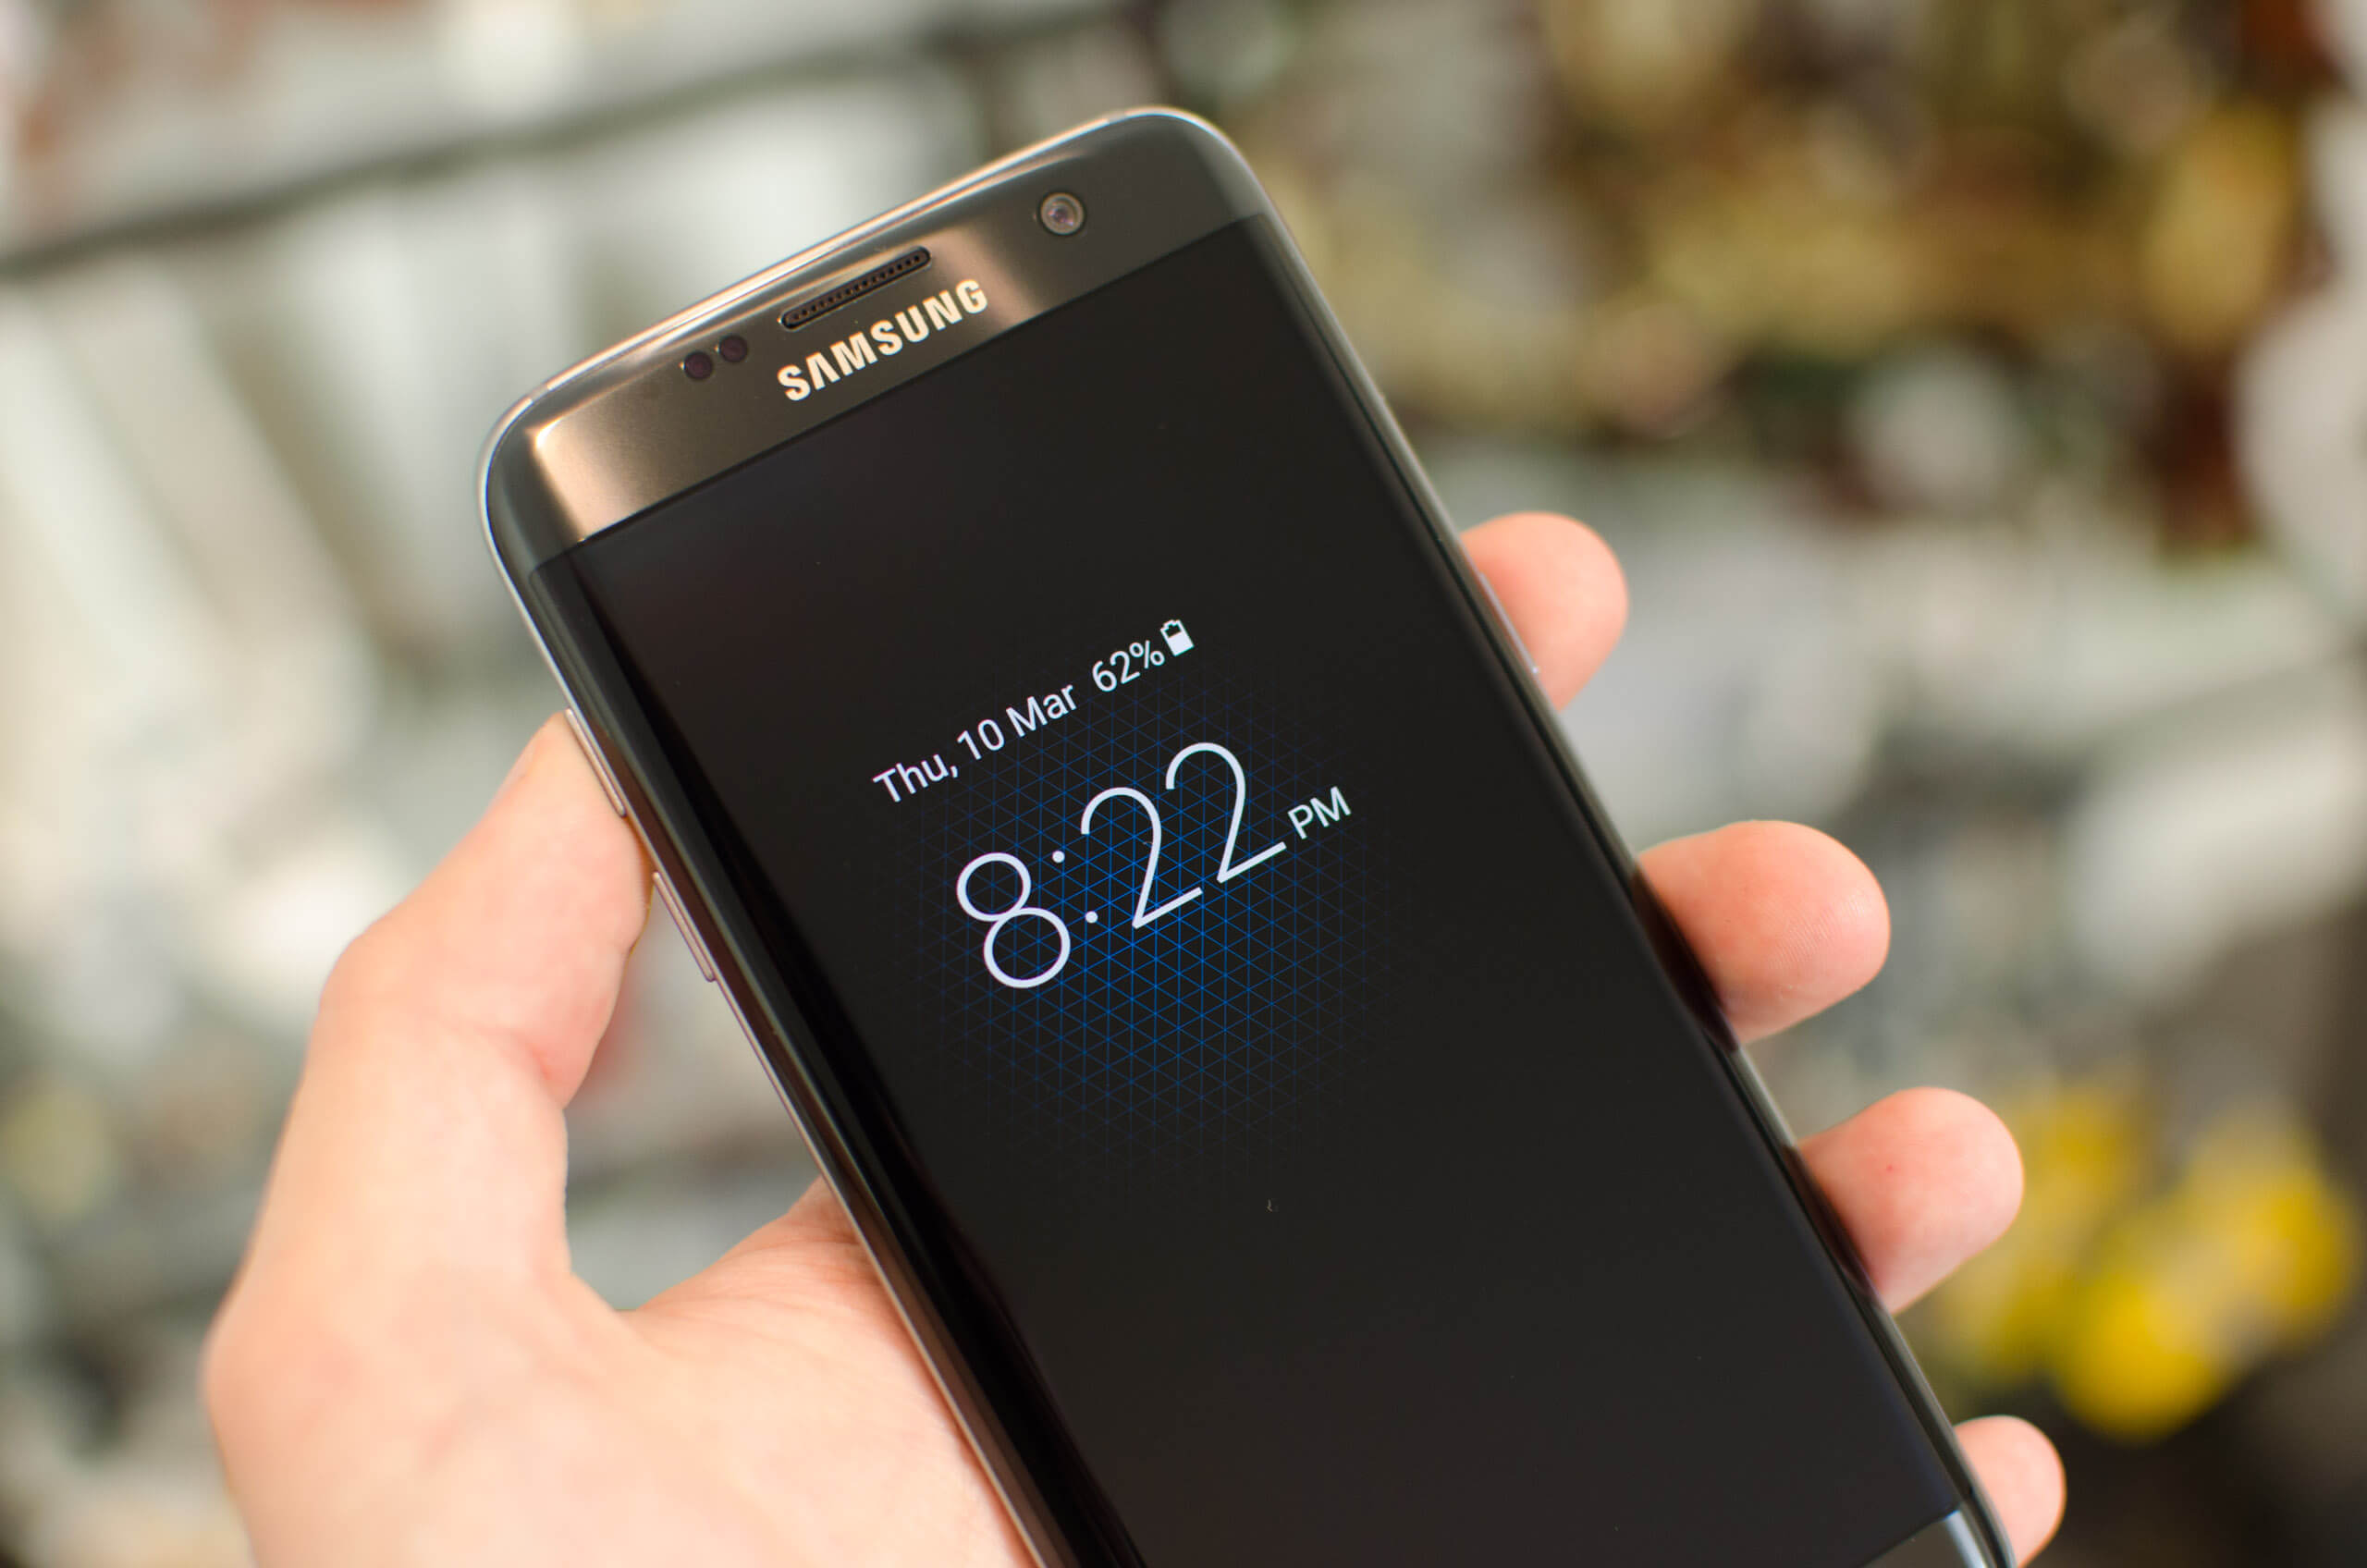 Tested: The Galaxy S7's always-on display consumes very little